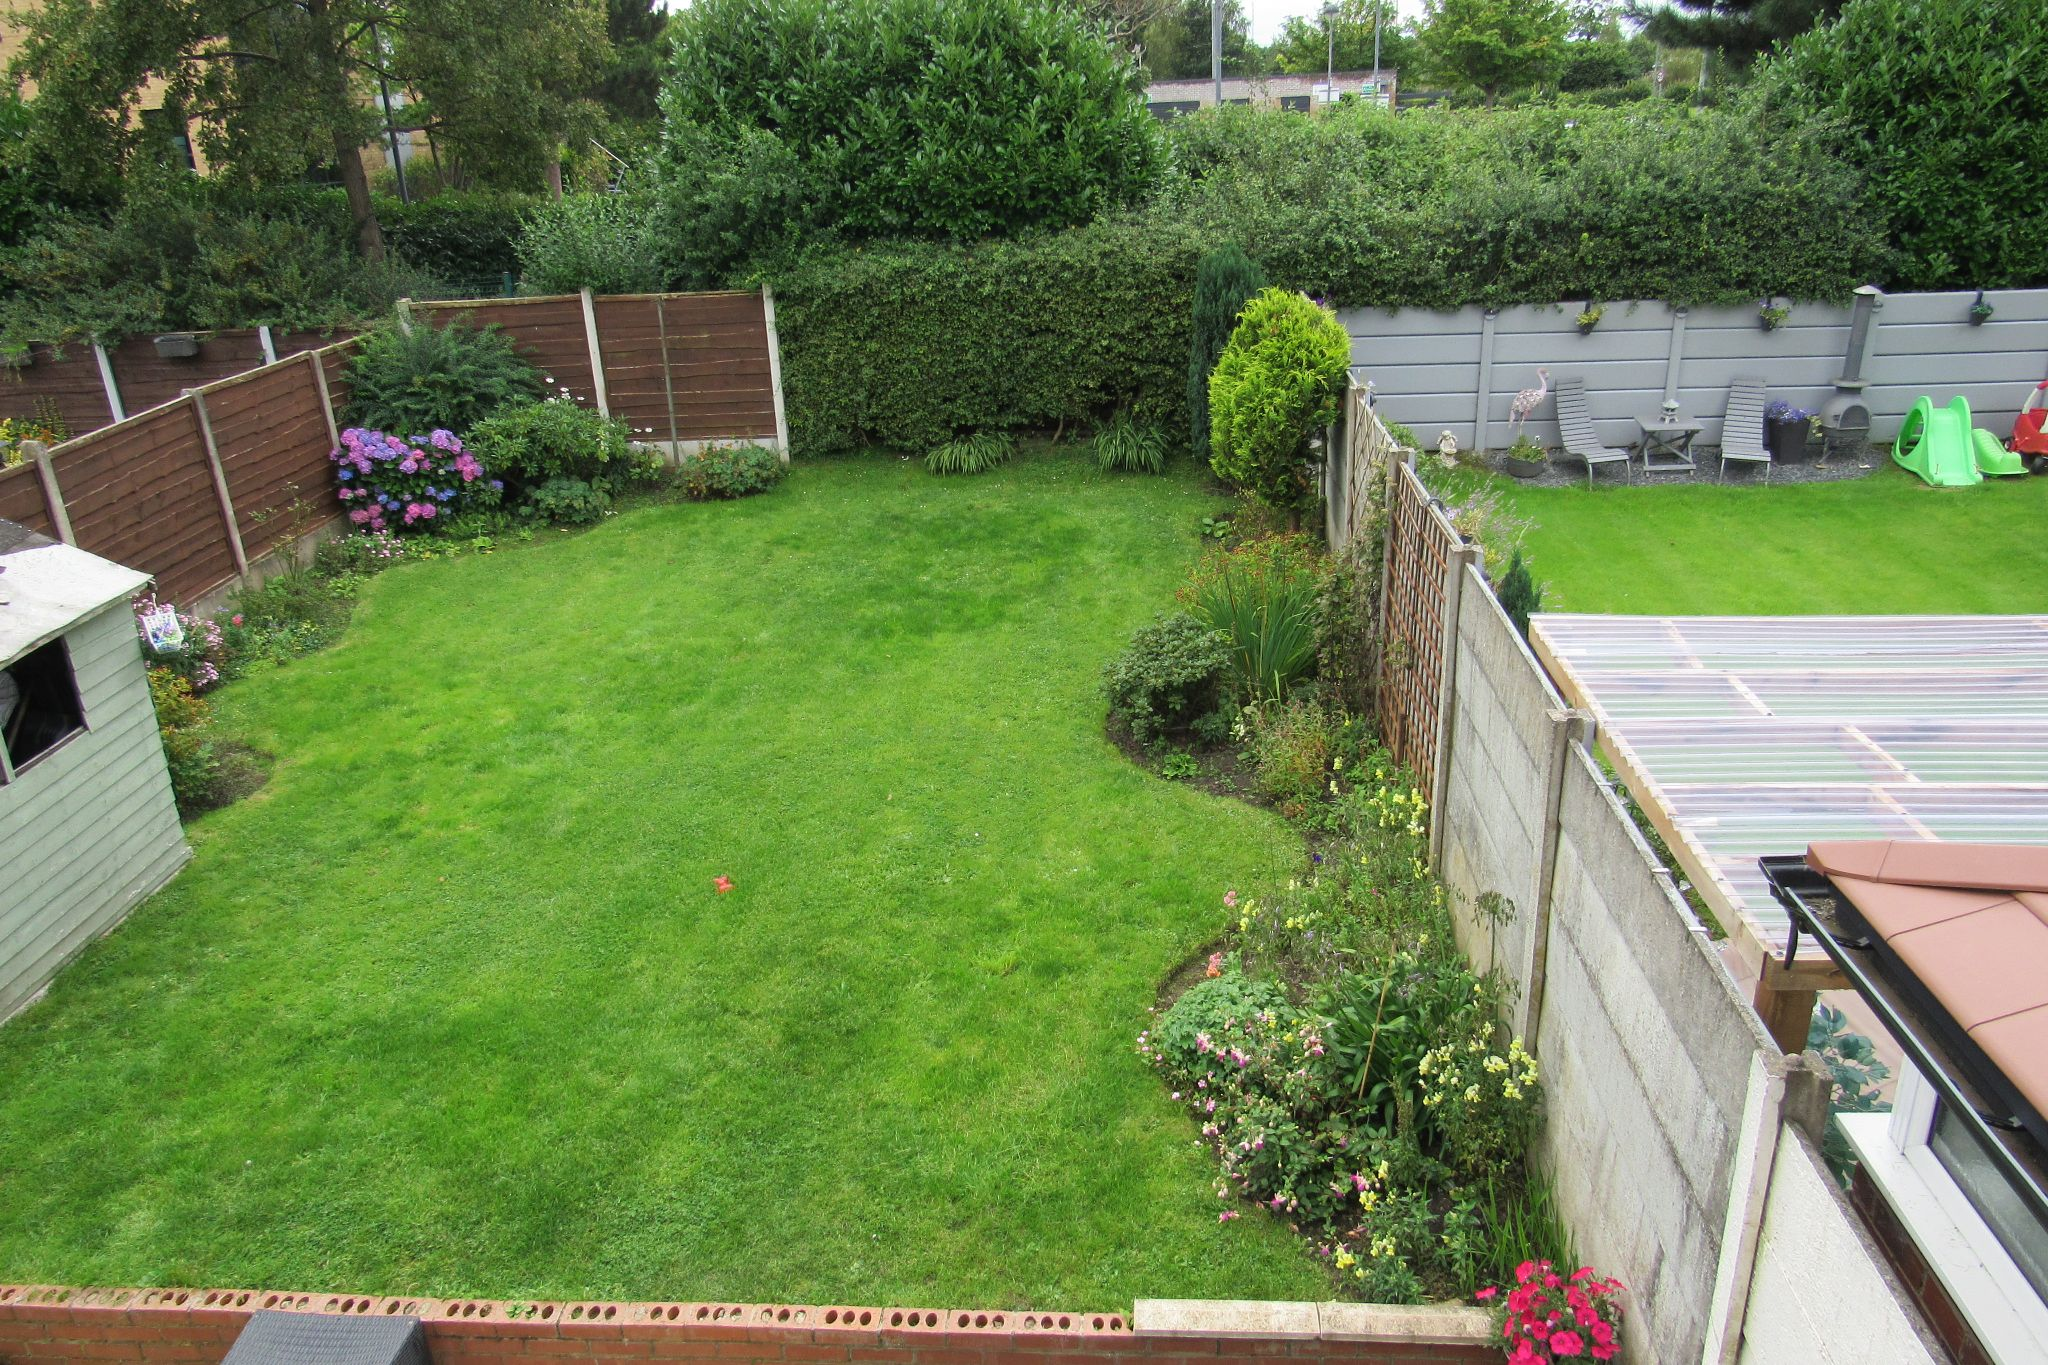 3 bedroom semi-detached house SSTC in Manchester - Photograph 22.